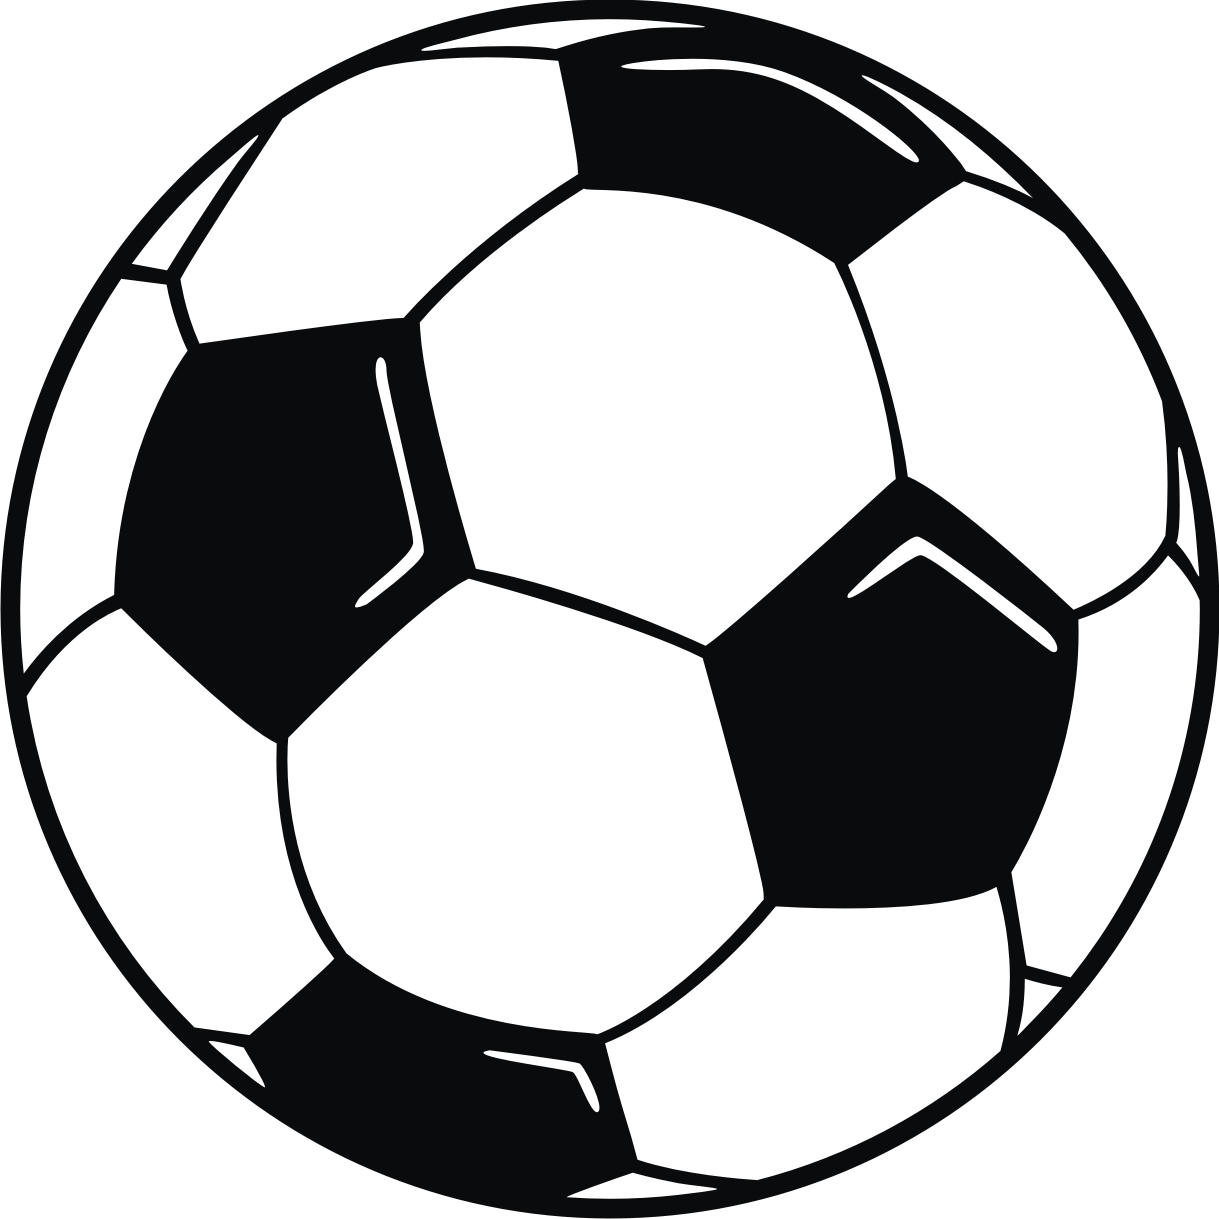 clip art soccer ball with hi lights graphic design pinterest rh pinterest com soccer clip art black and white soccer clip art free